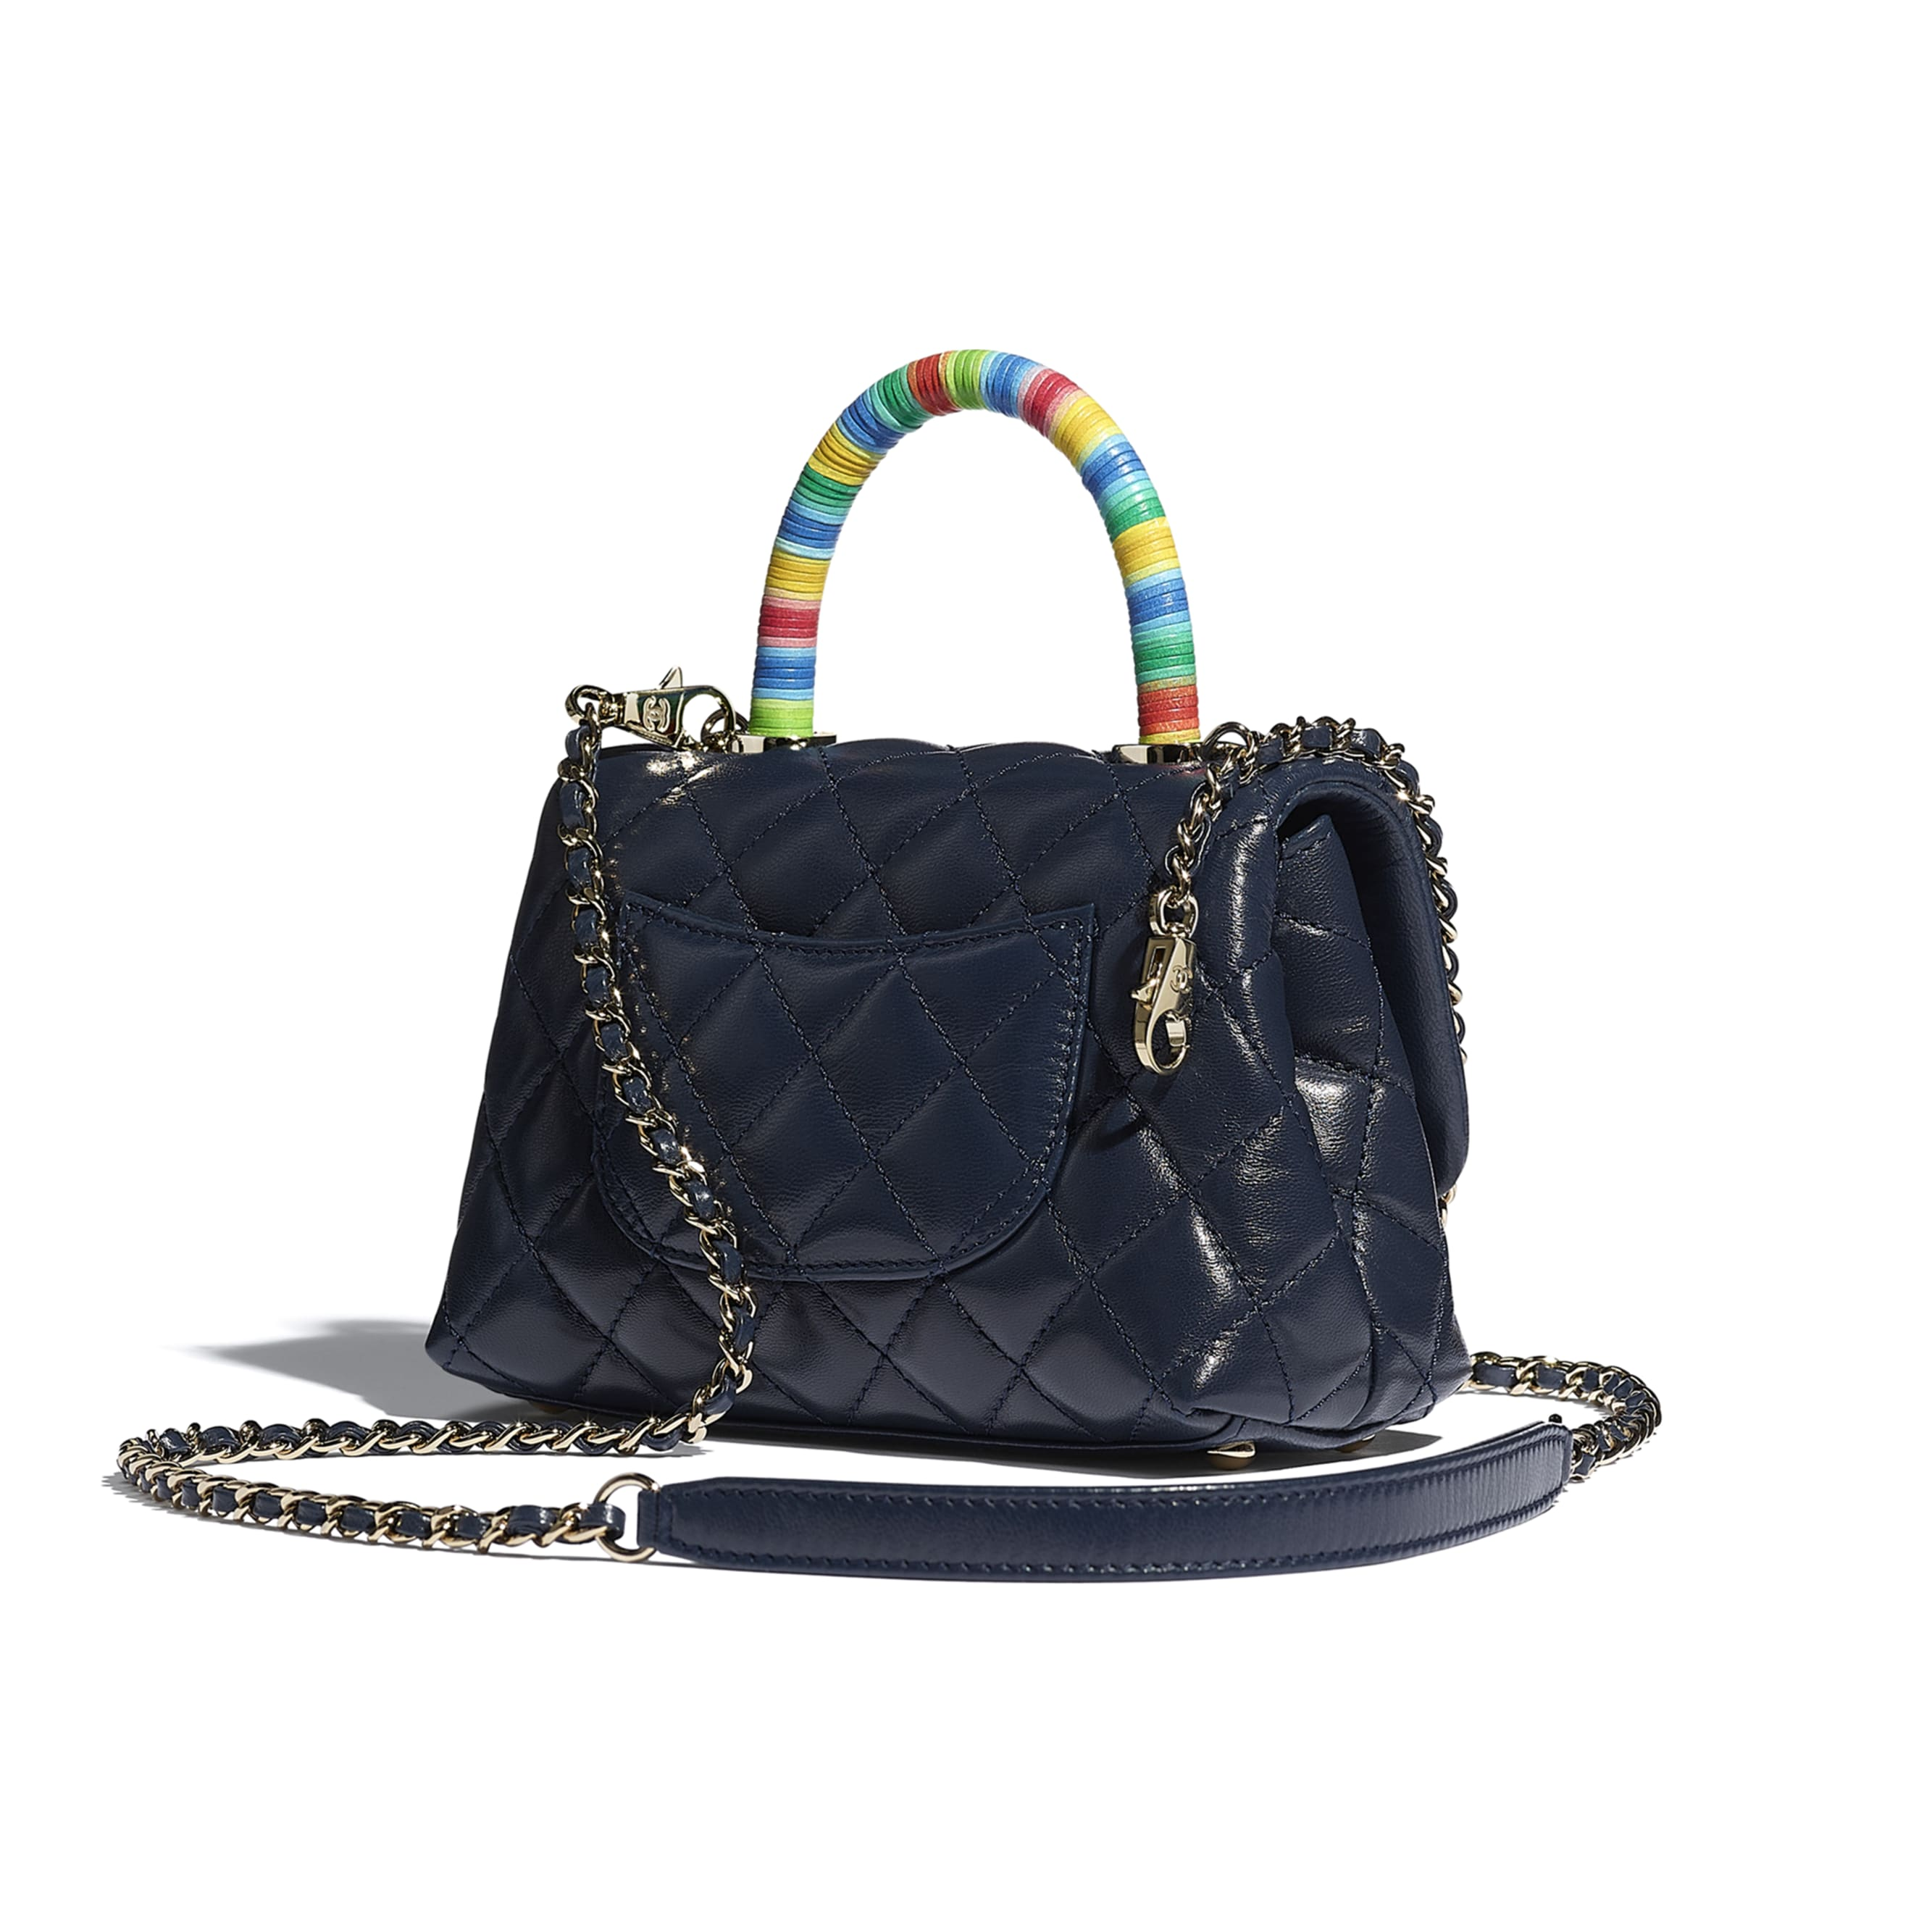 Mini Flap Bag with Top Handle - Navy Blue - Goatskin & Gold-Tone Metal - CHANEL - Other view - see standard sized version